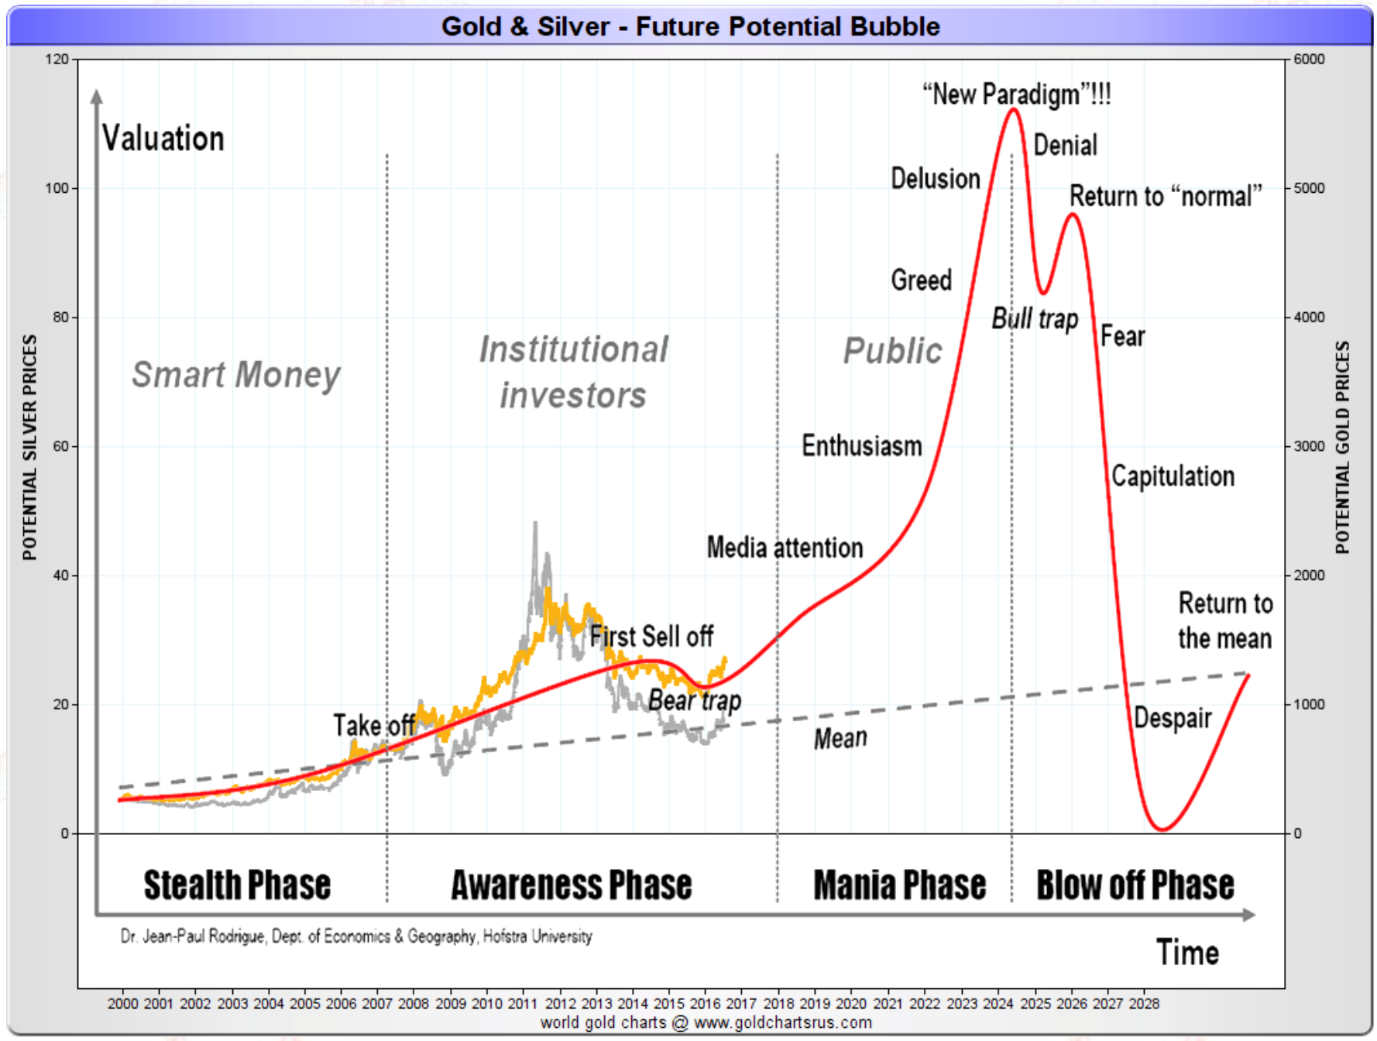 Gold and Silver - Future potential bubble